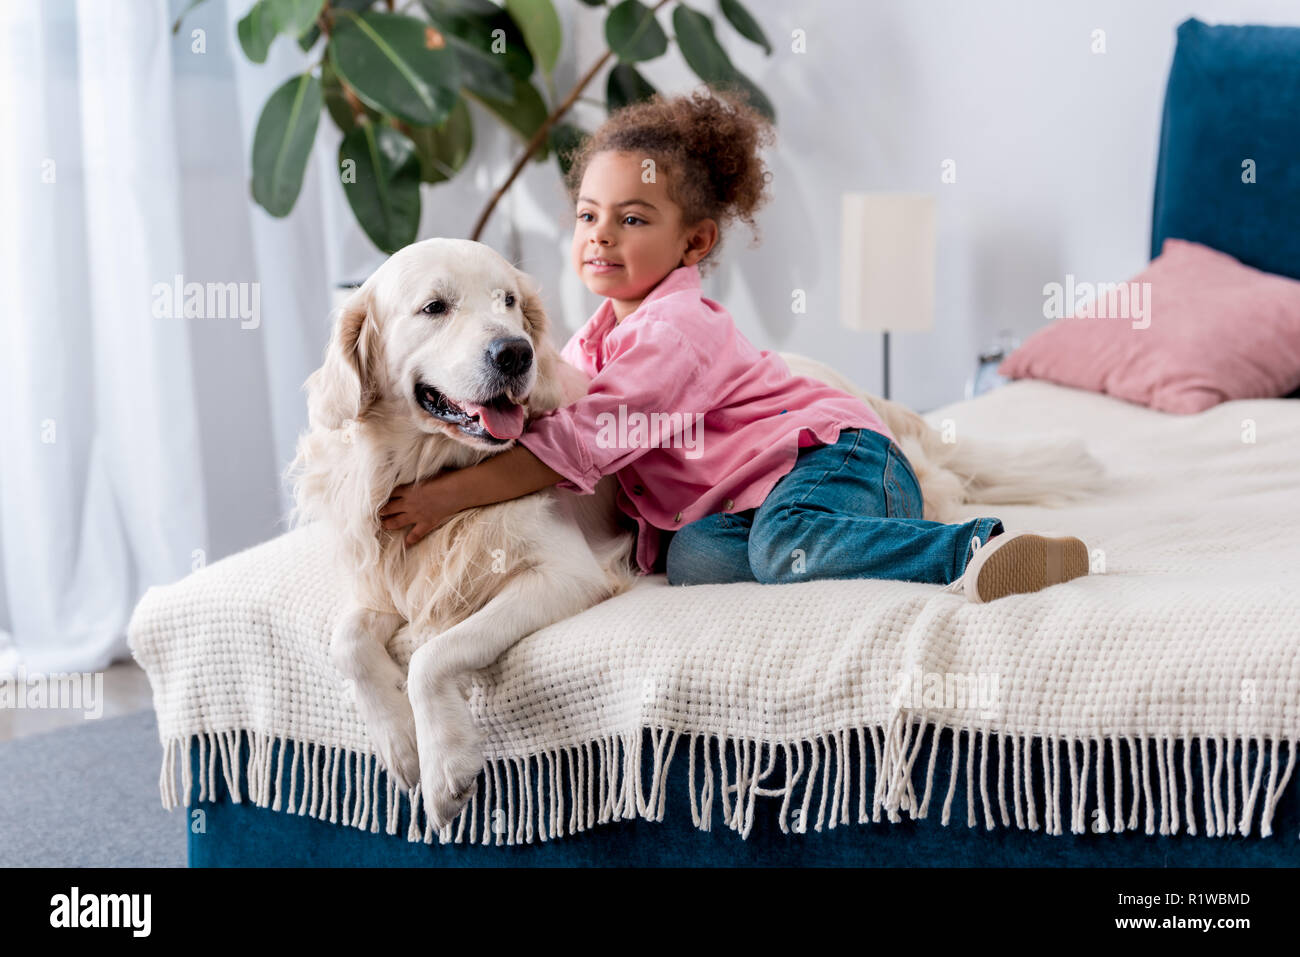 Cute african american kid sitting on the bed and  hugging her dog - Stock Image